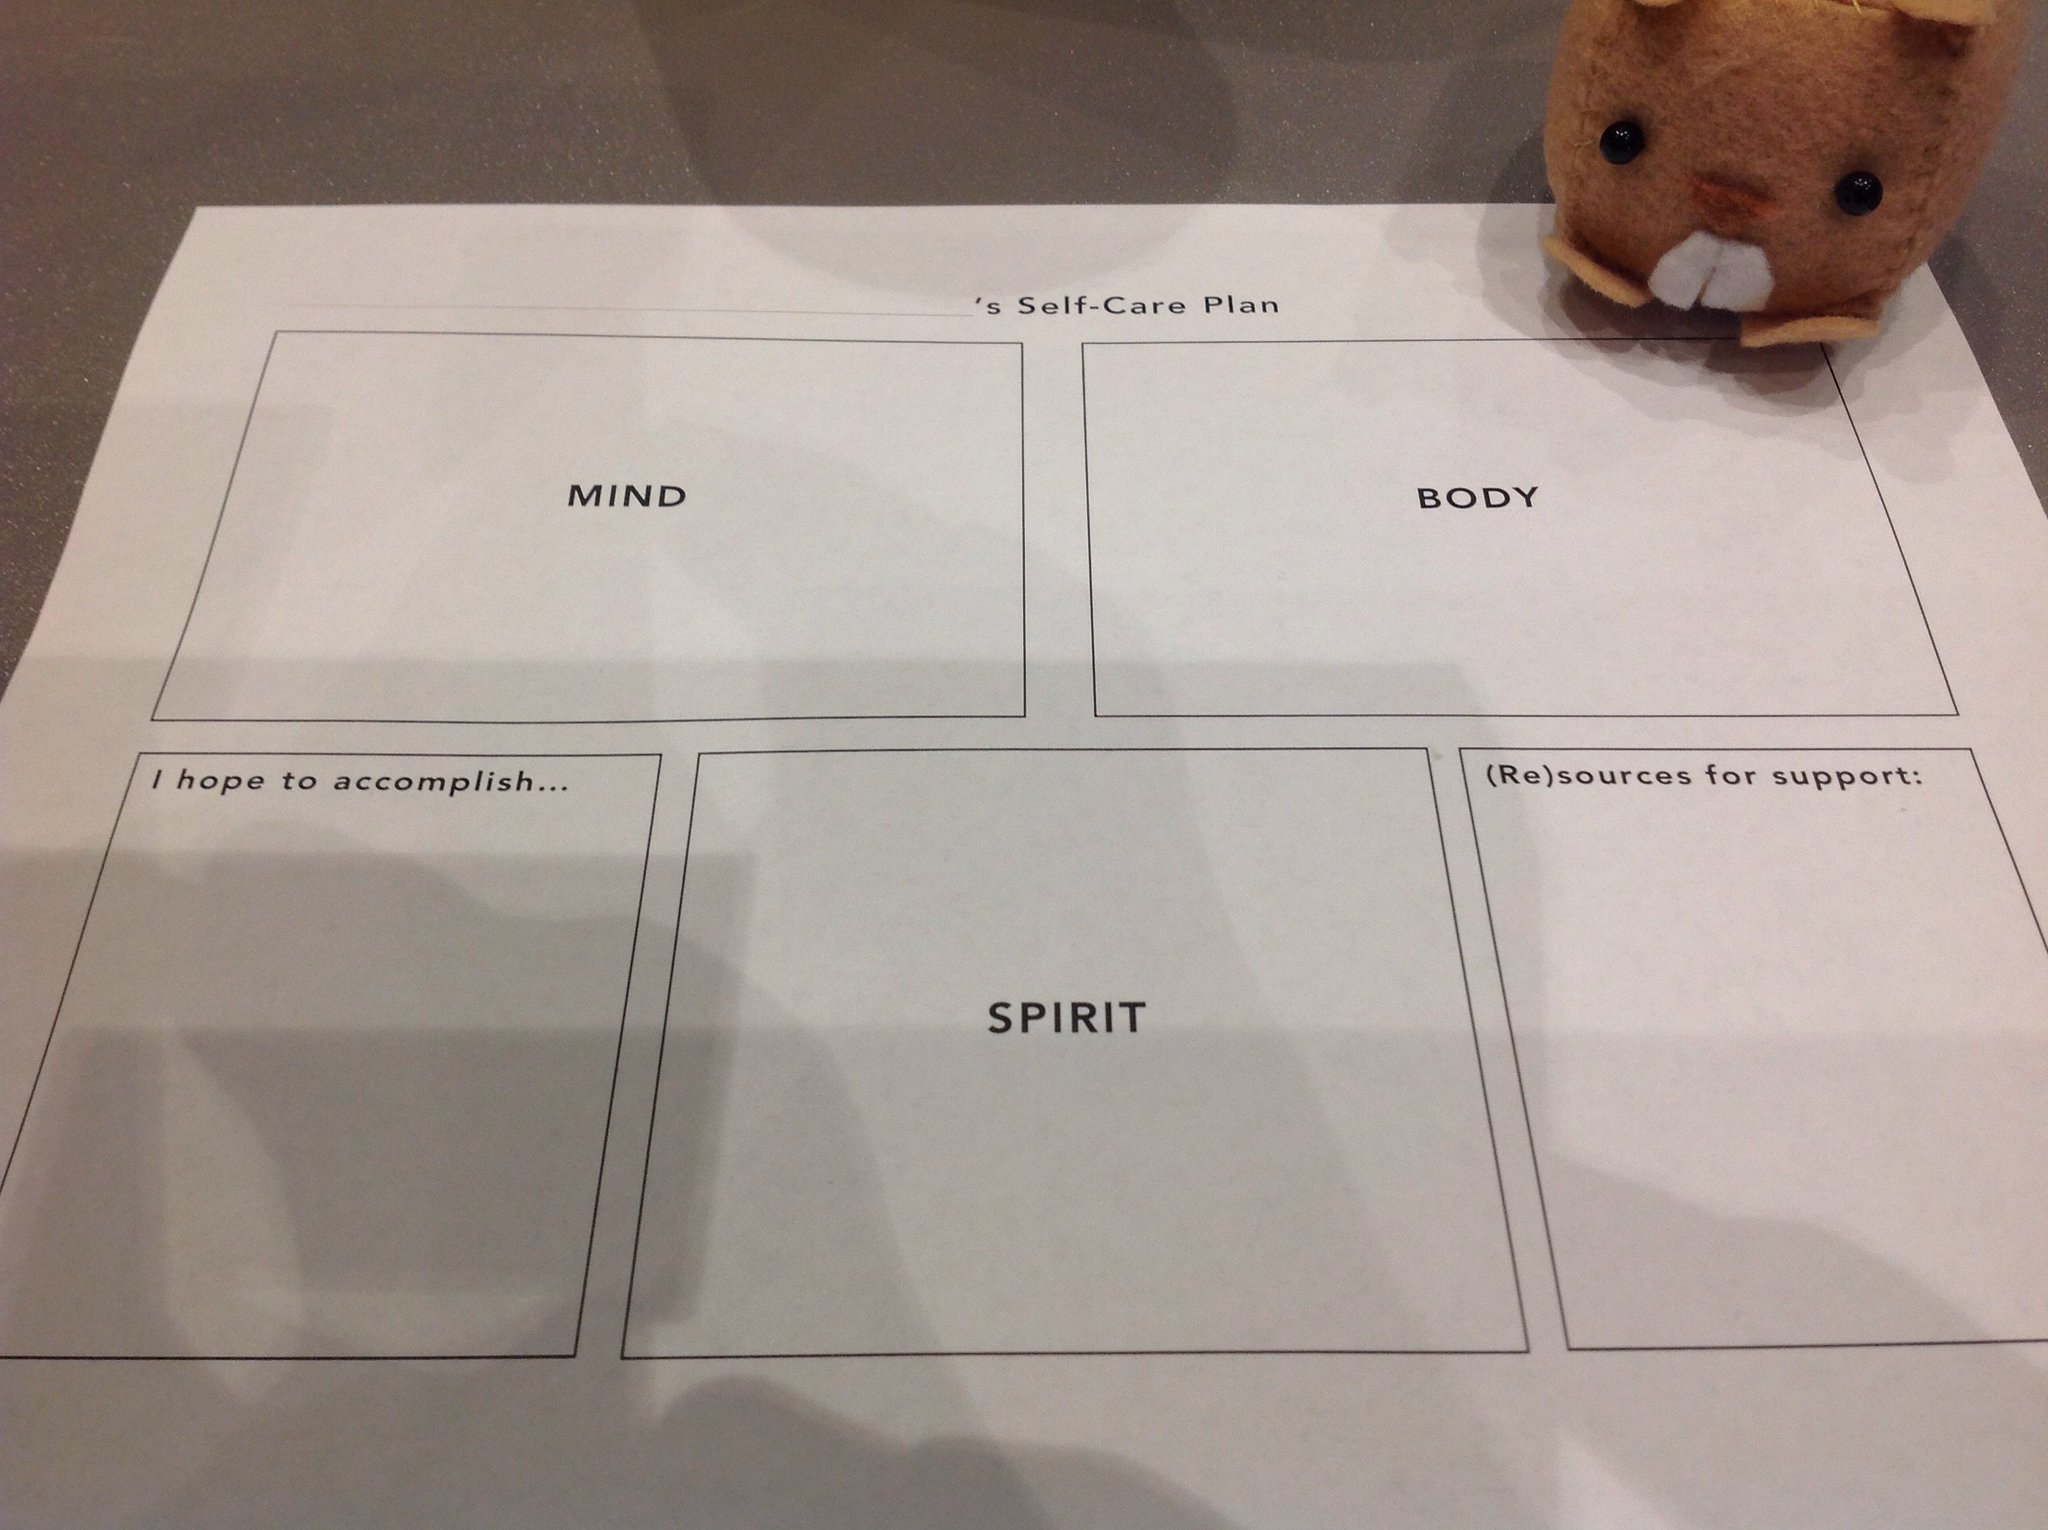 .@ahhitt shares self-care plan used in classes and generated with students to keep self-care in focus #h5 #dis #4C17 https://t.co/STHp1q5VHd